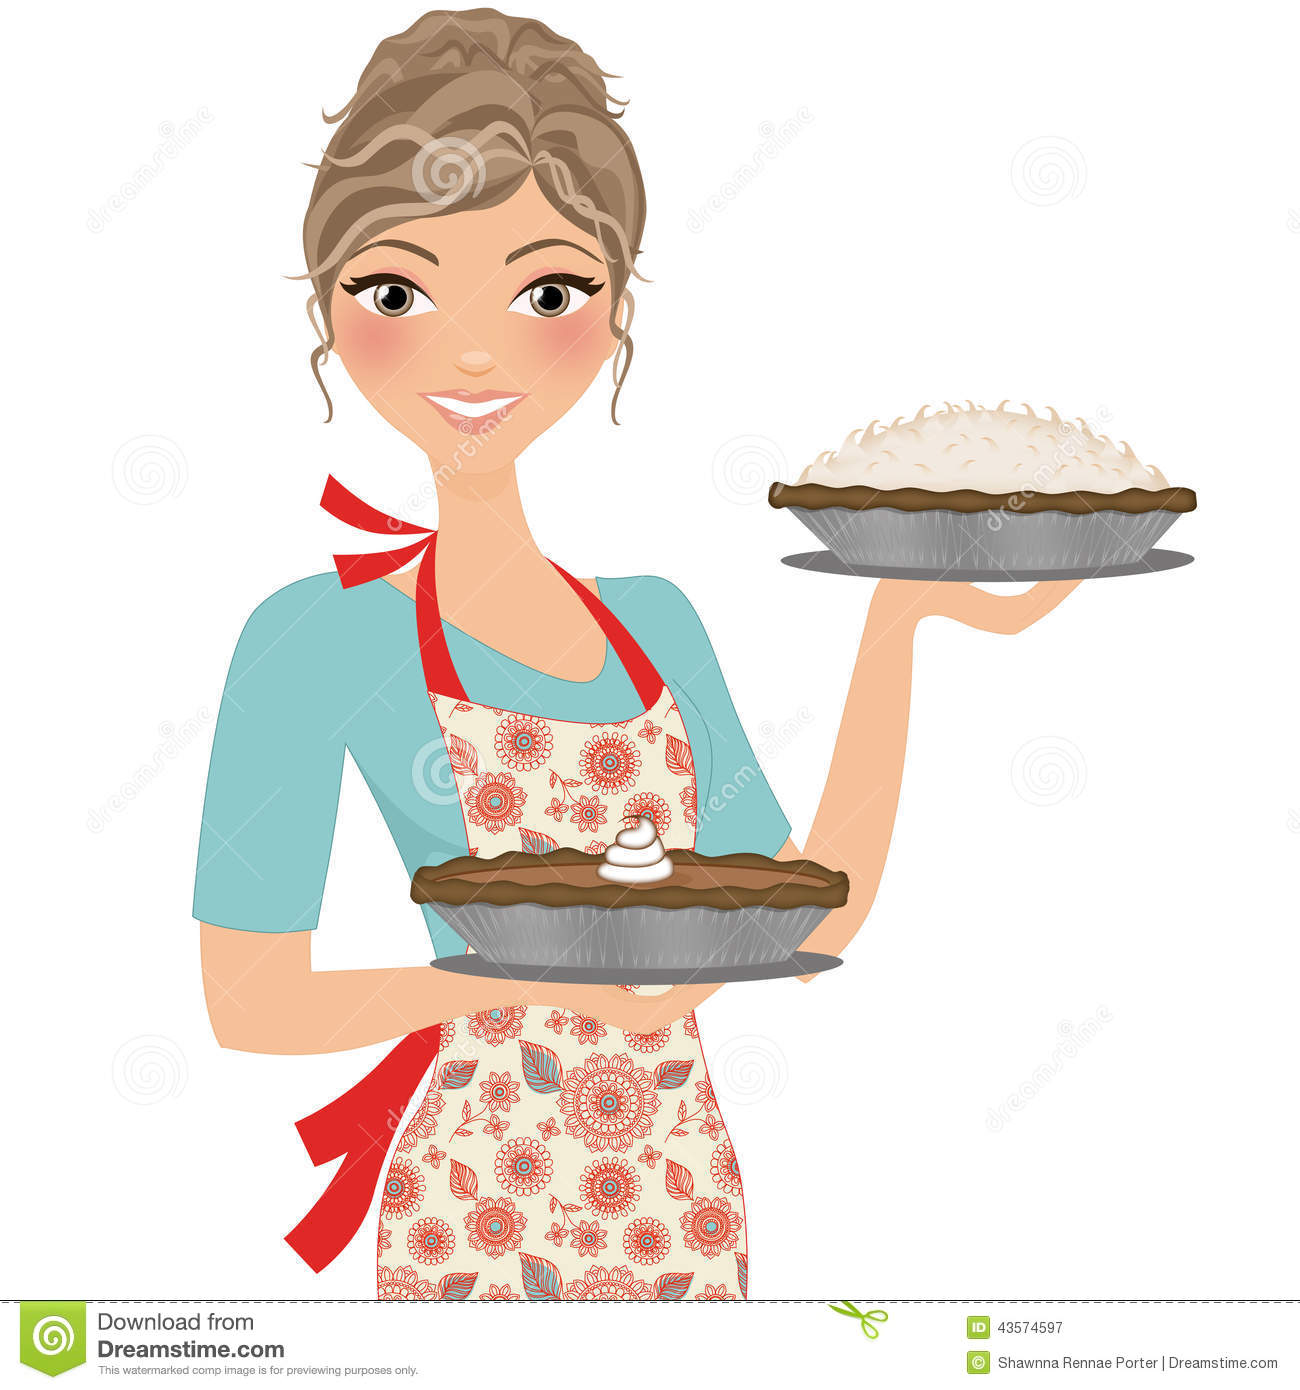 Pencil and in color. Pie clipart baker